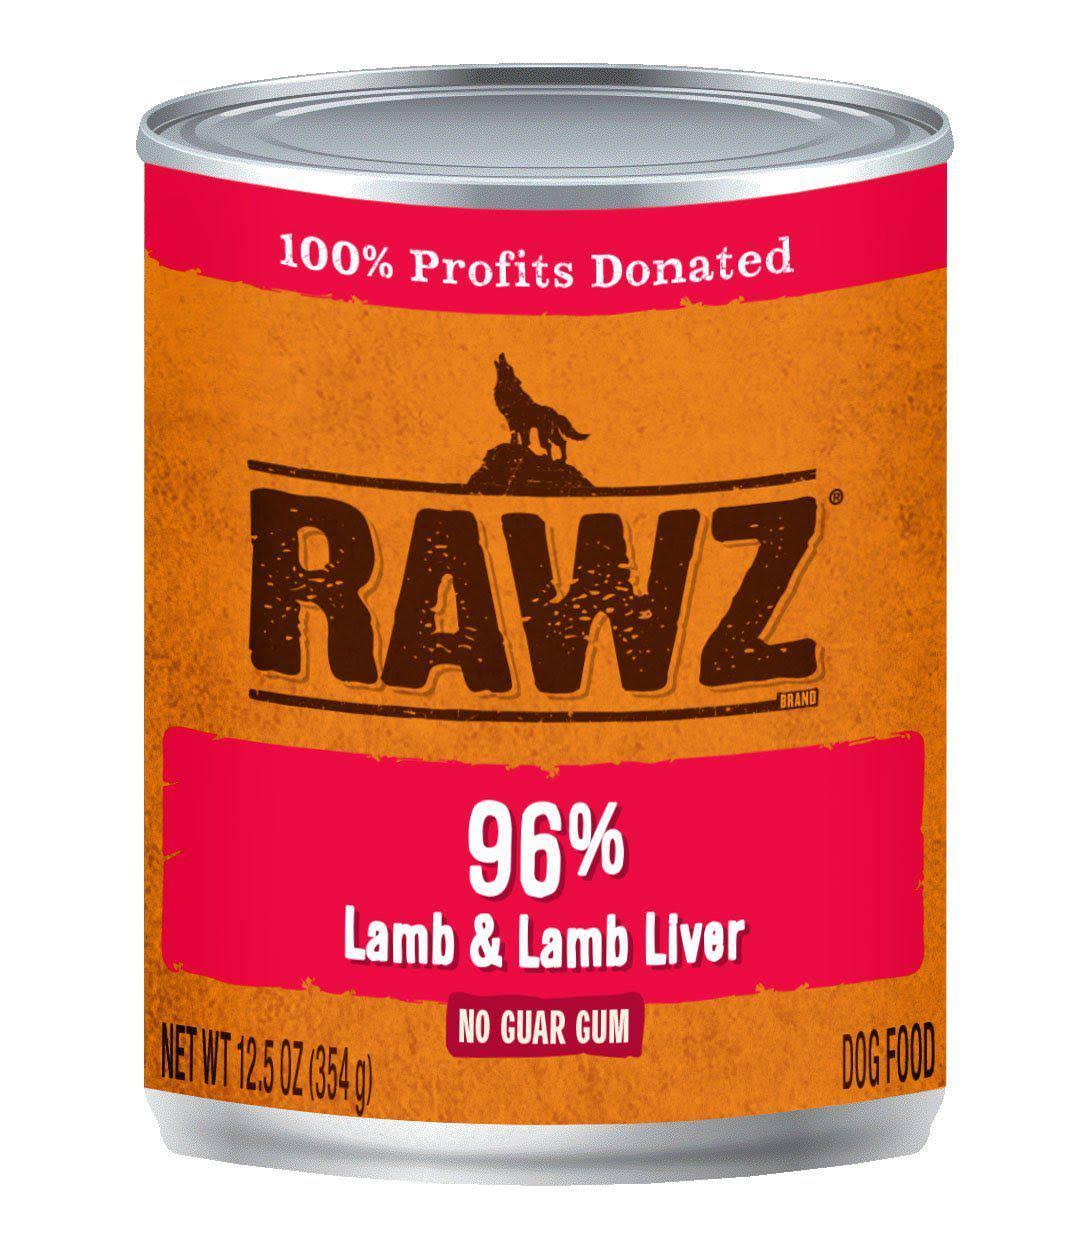 Rawz 96% Lamb & Liver Dog Food Can | Tomlinson's Feed 12.5 oz